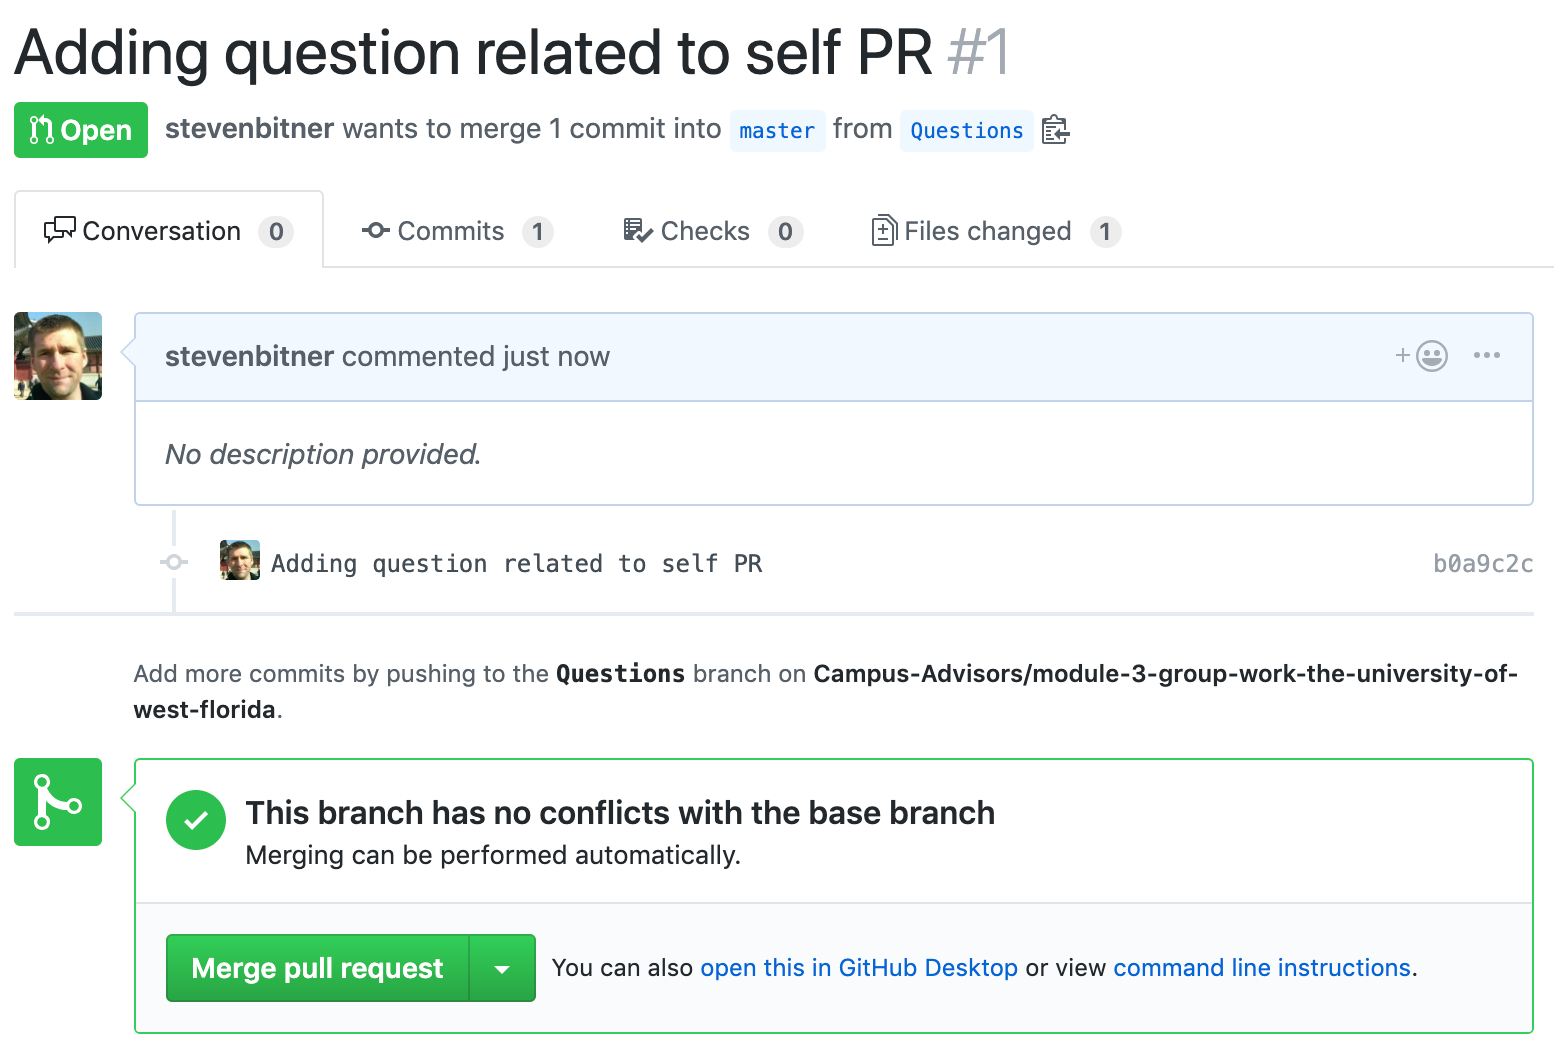 Adding_question_related_to_self_PR_by_stevenbitner_%C2%B7_Pull_Request__1_%C2%B7_Campus-Advisors_module-3-group-work-the-university-of-west-florida